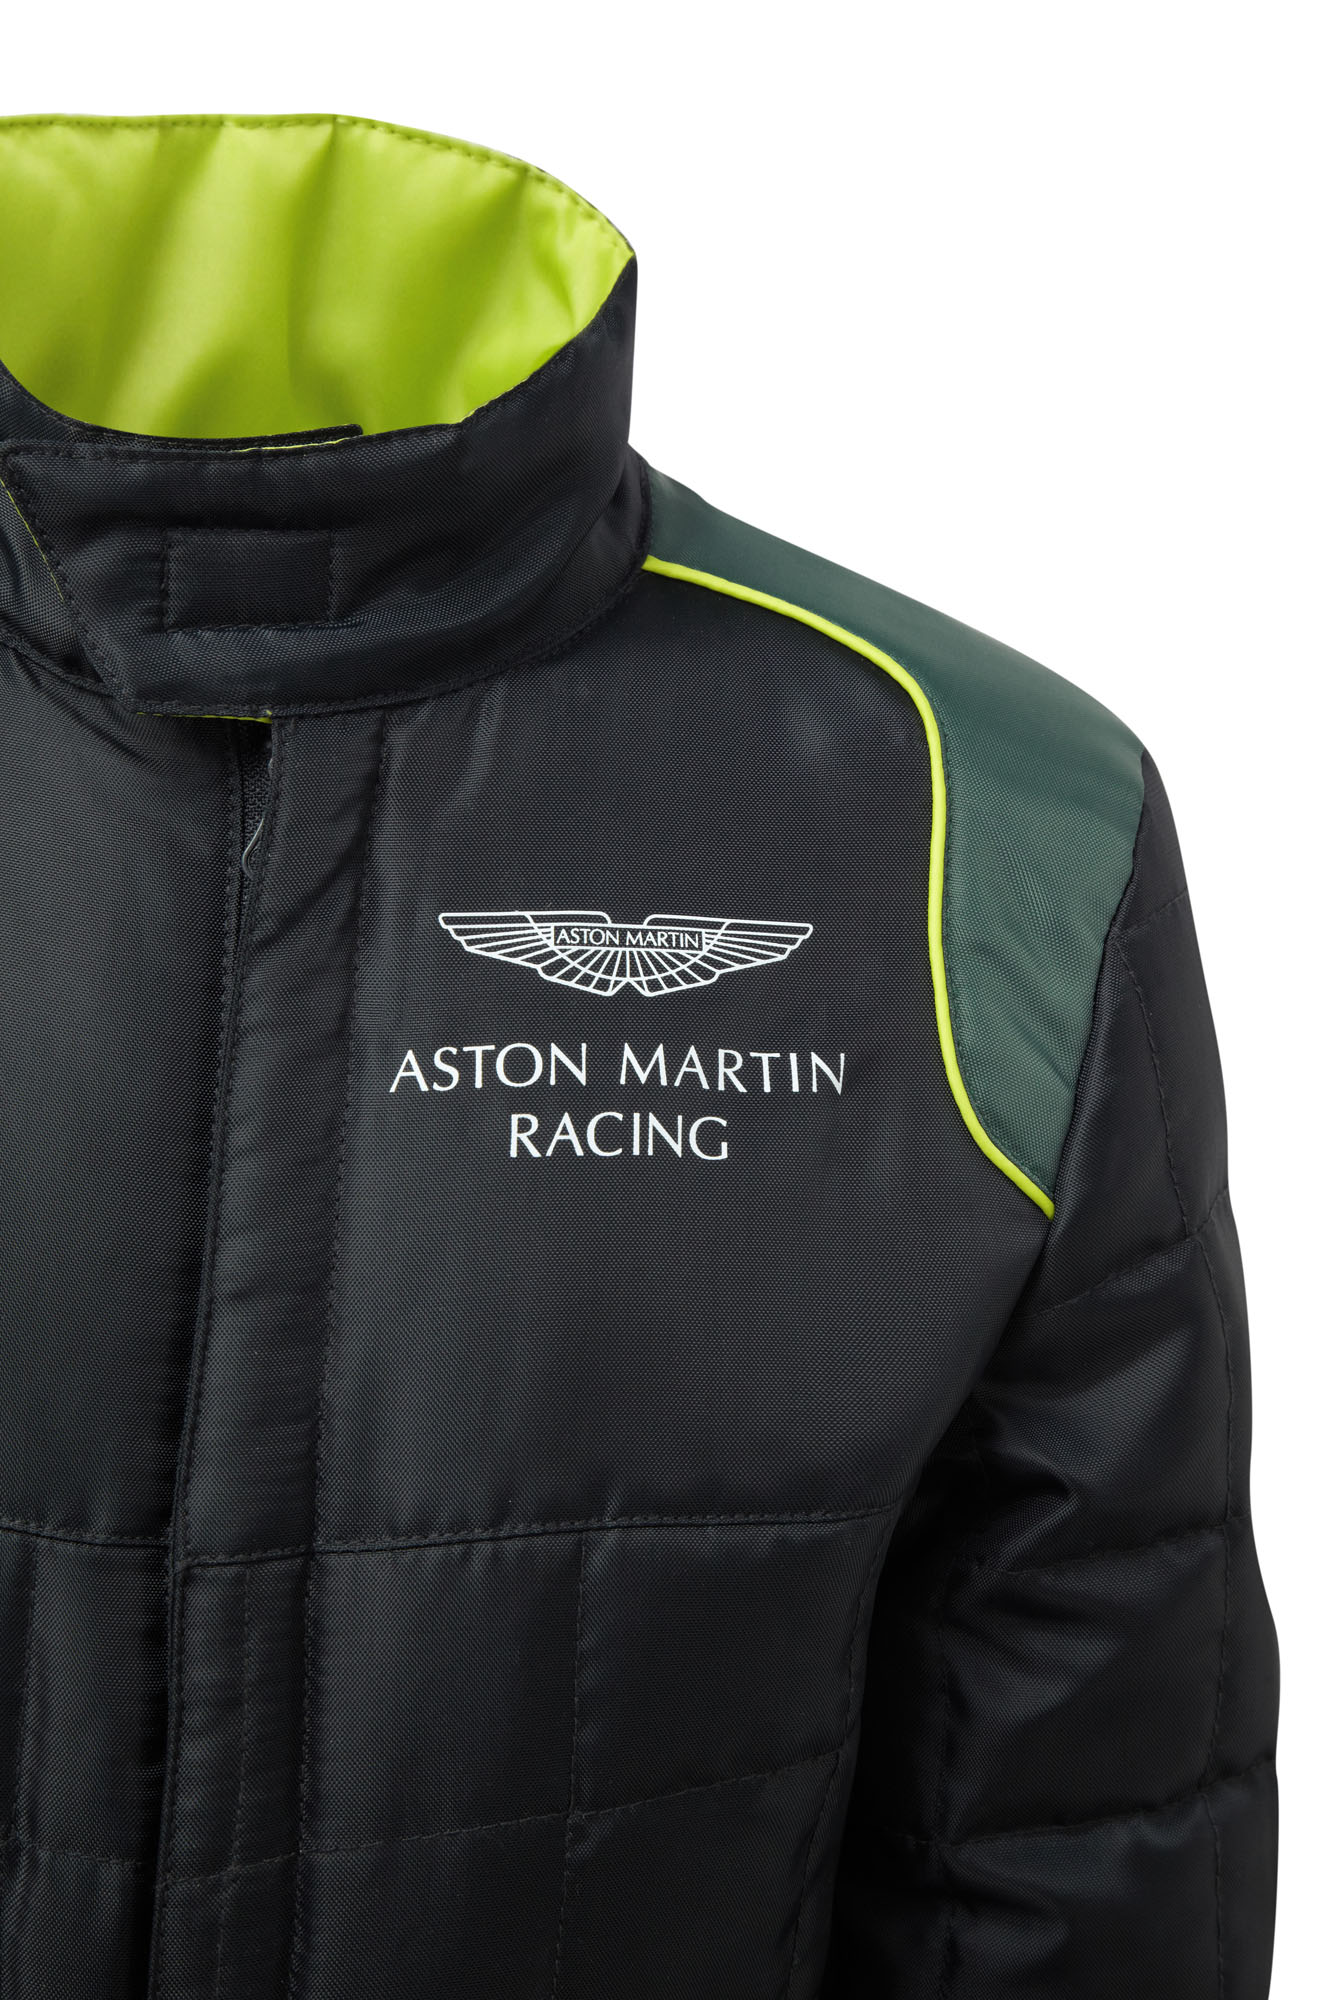 New Aston Martin Racing Childrens Race Suit Overalls Kids Age - Aston martin clothing